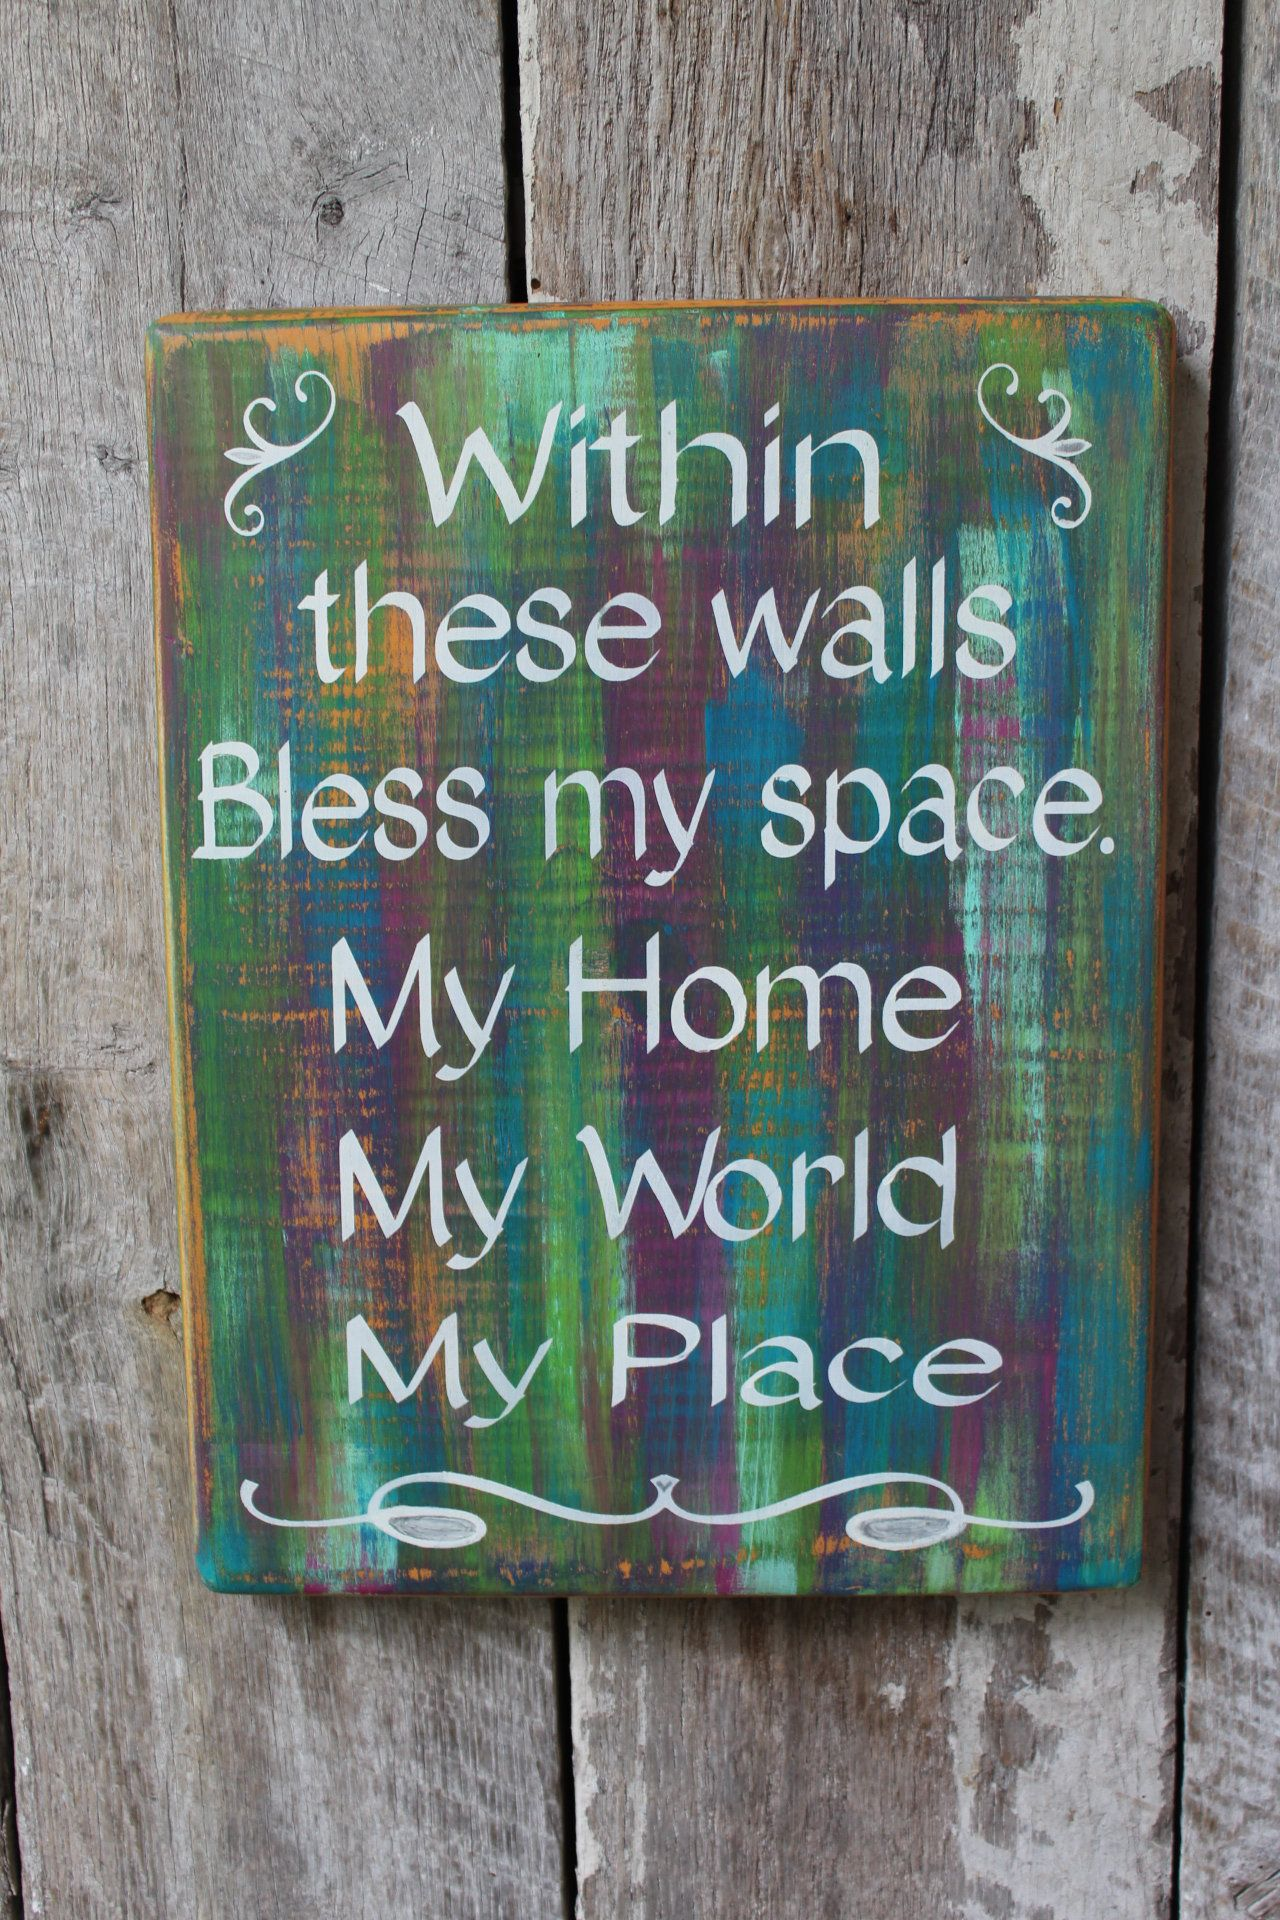 Within These Walls Bless My Space House Blessing Wood Sign Hippie Decor Boho Decor Gypsy Decor Wicca Decor Rainbow Wall Decor House Warming images